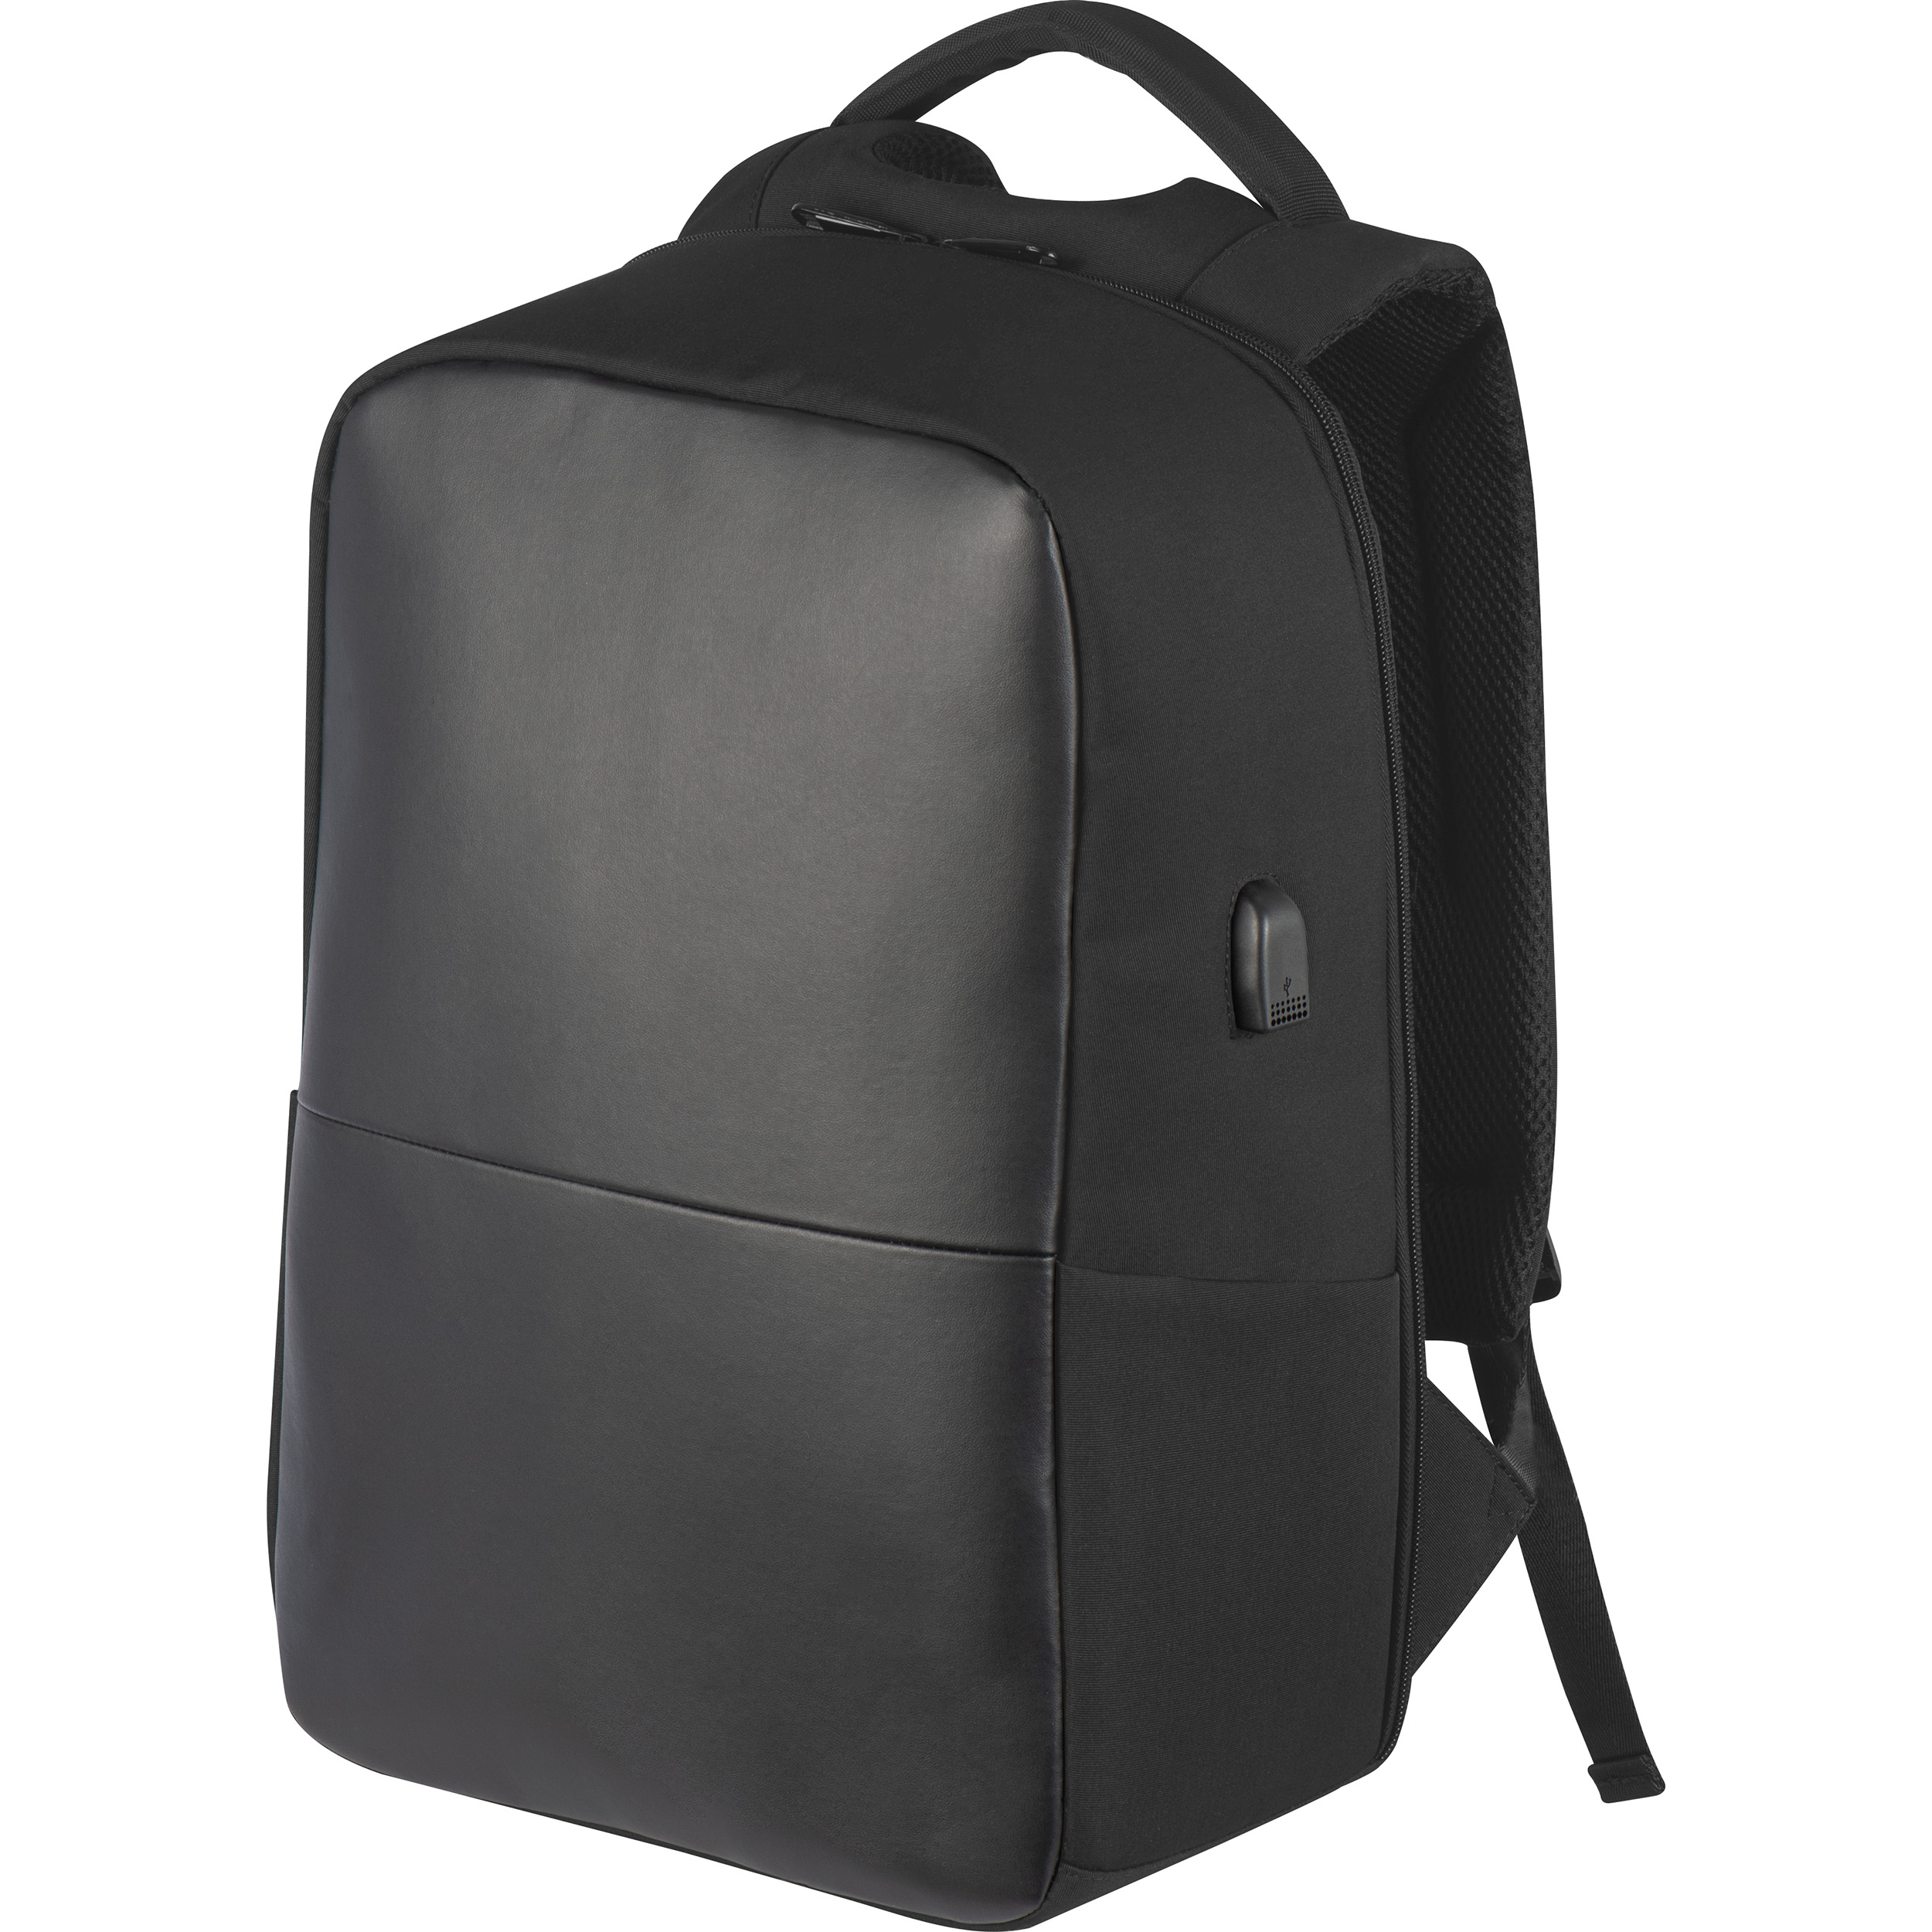 High-quality backpack with USB port